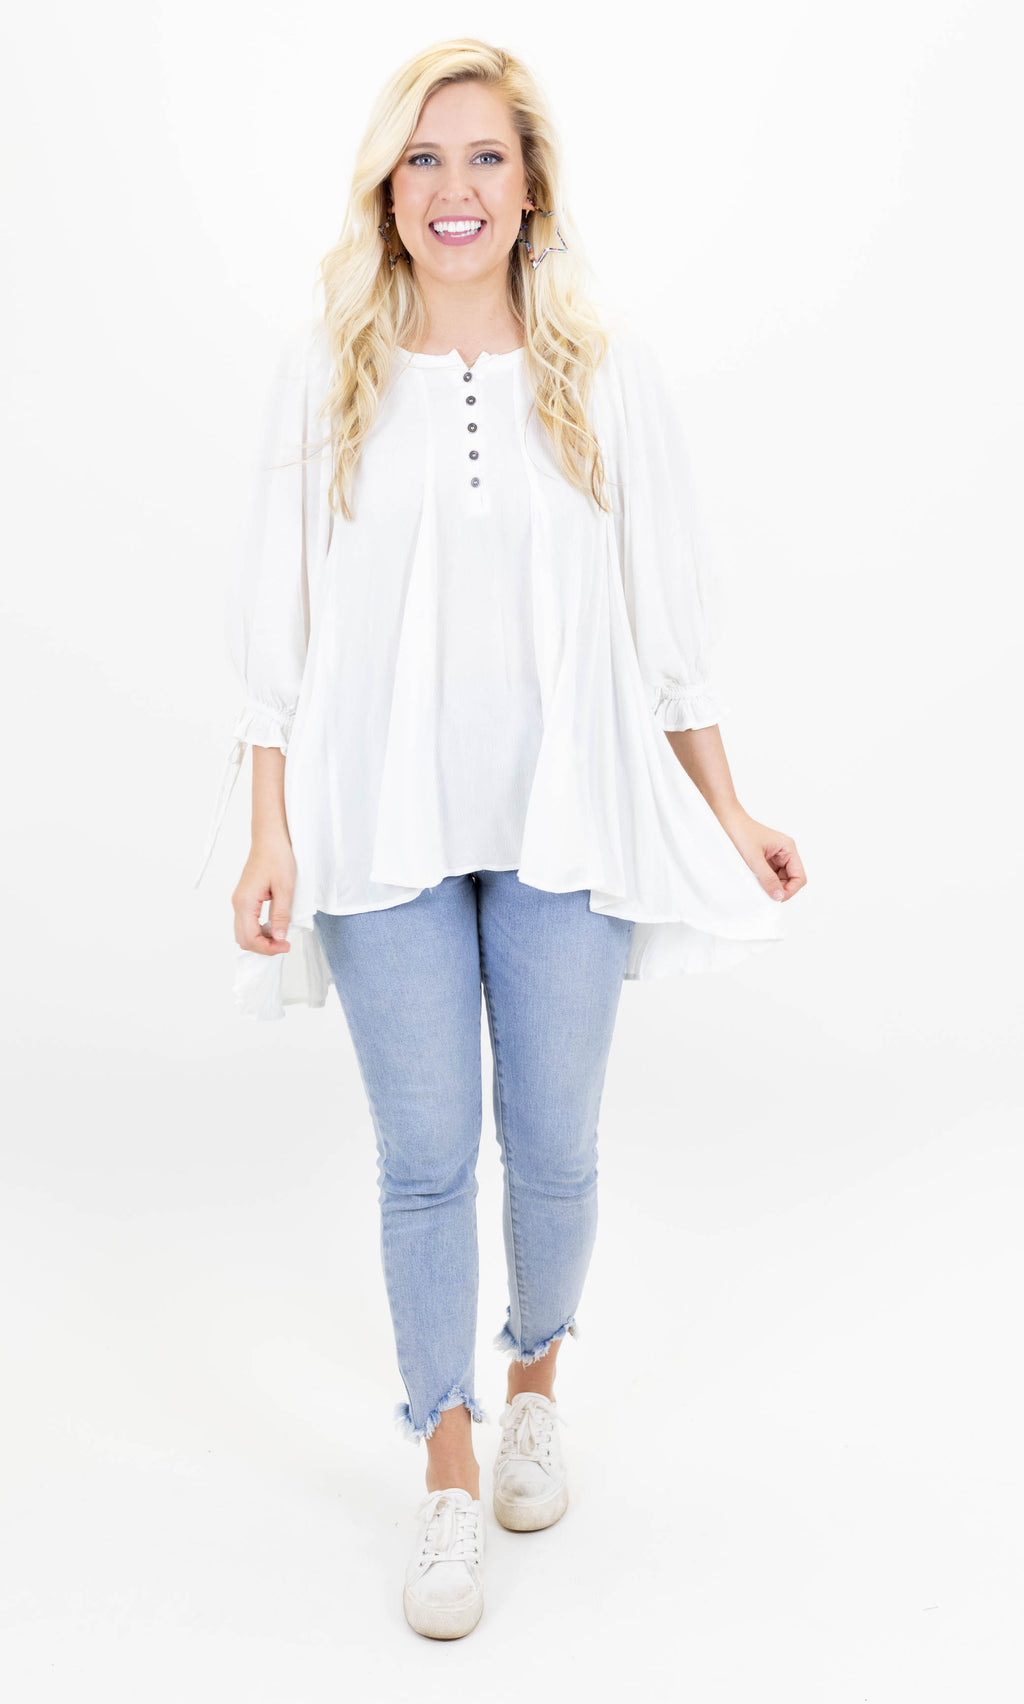 3/4 Length Sleeve Peasant Top with Tie Sleeves and Front Button Detailing